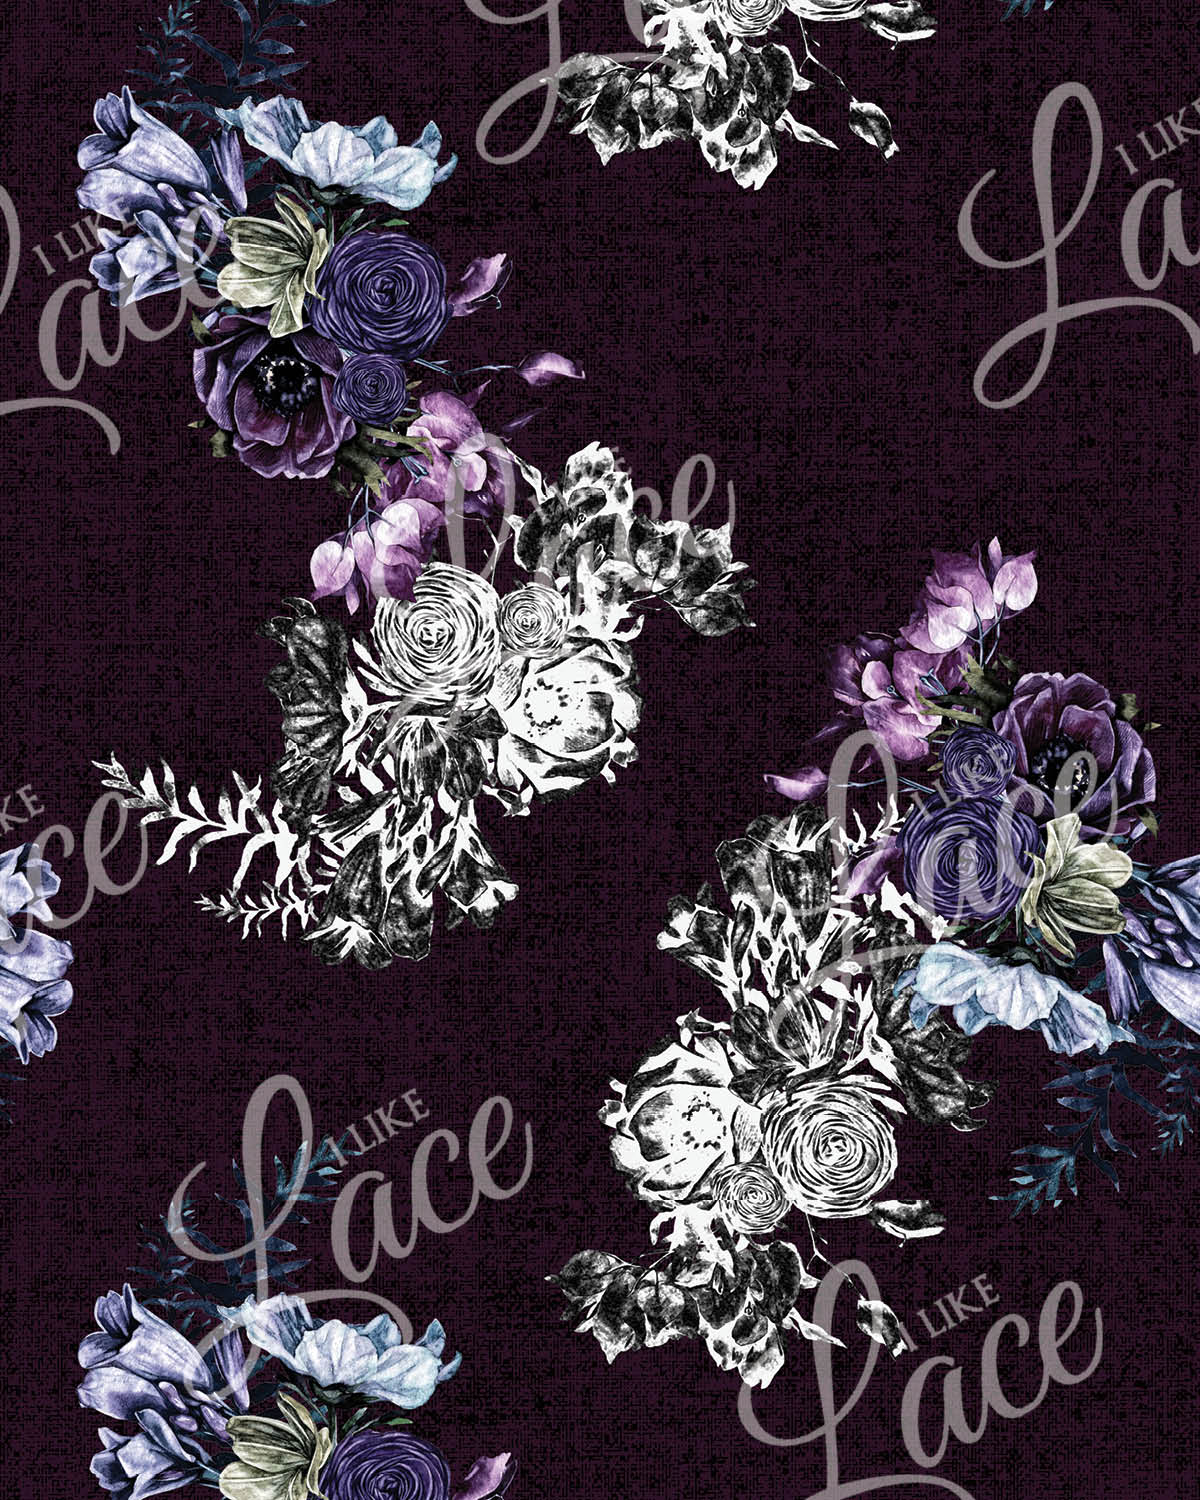 plum purple floral knit fabric for children's clothing